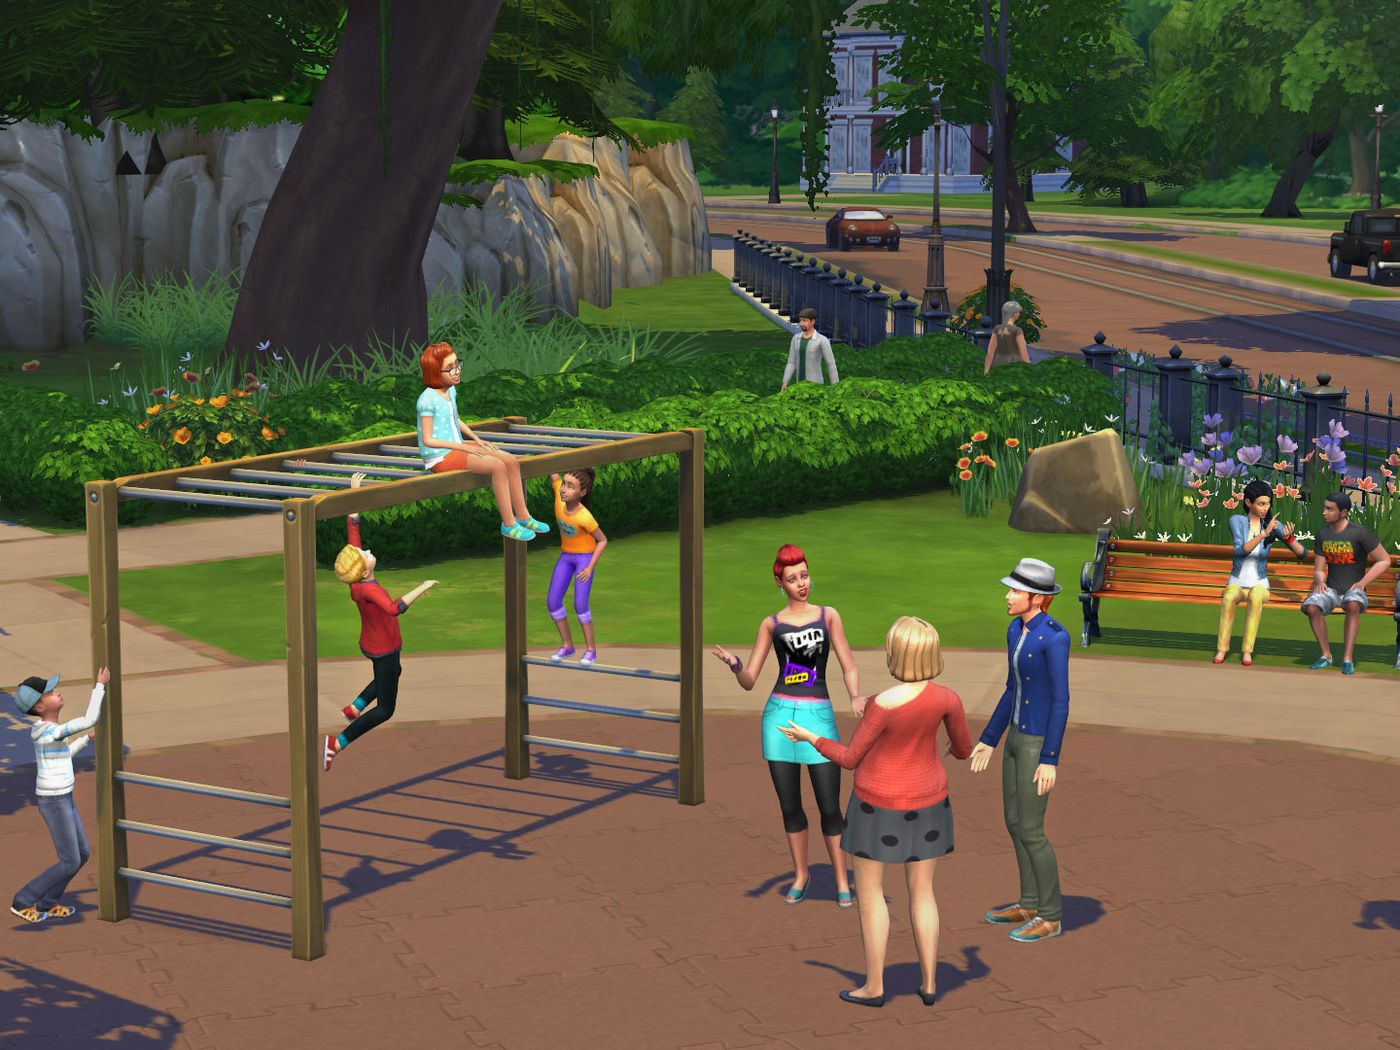 Tragic Sims 4 bug makes child protective services take away your kids -  Polygon